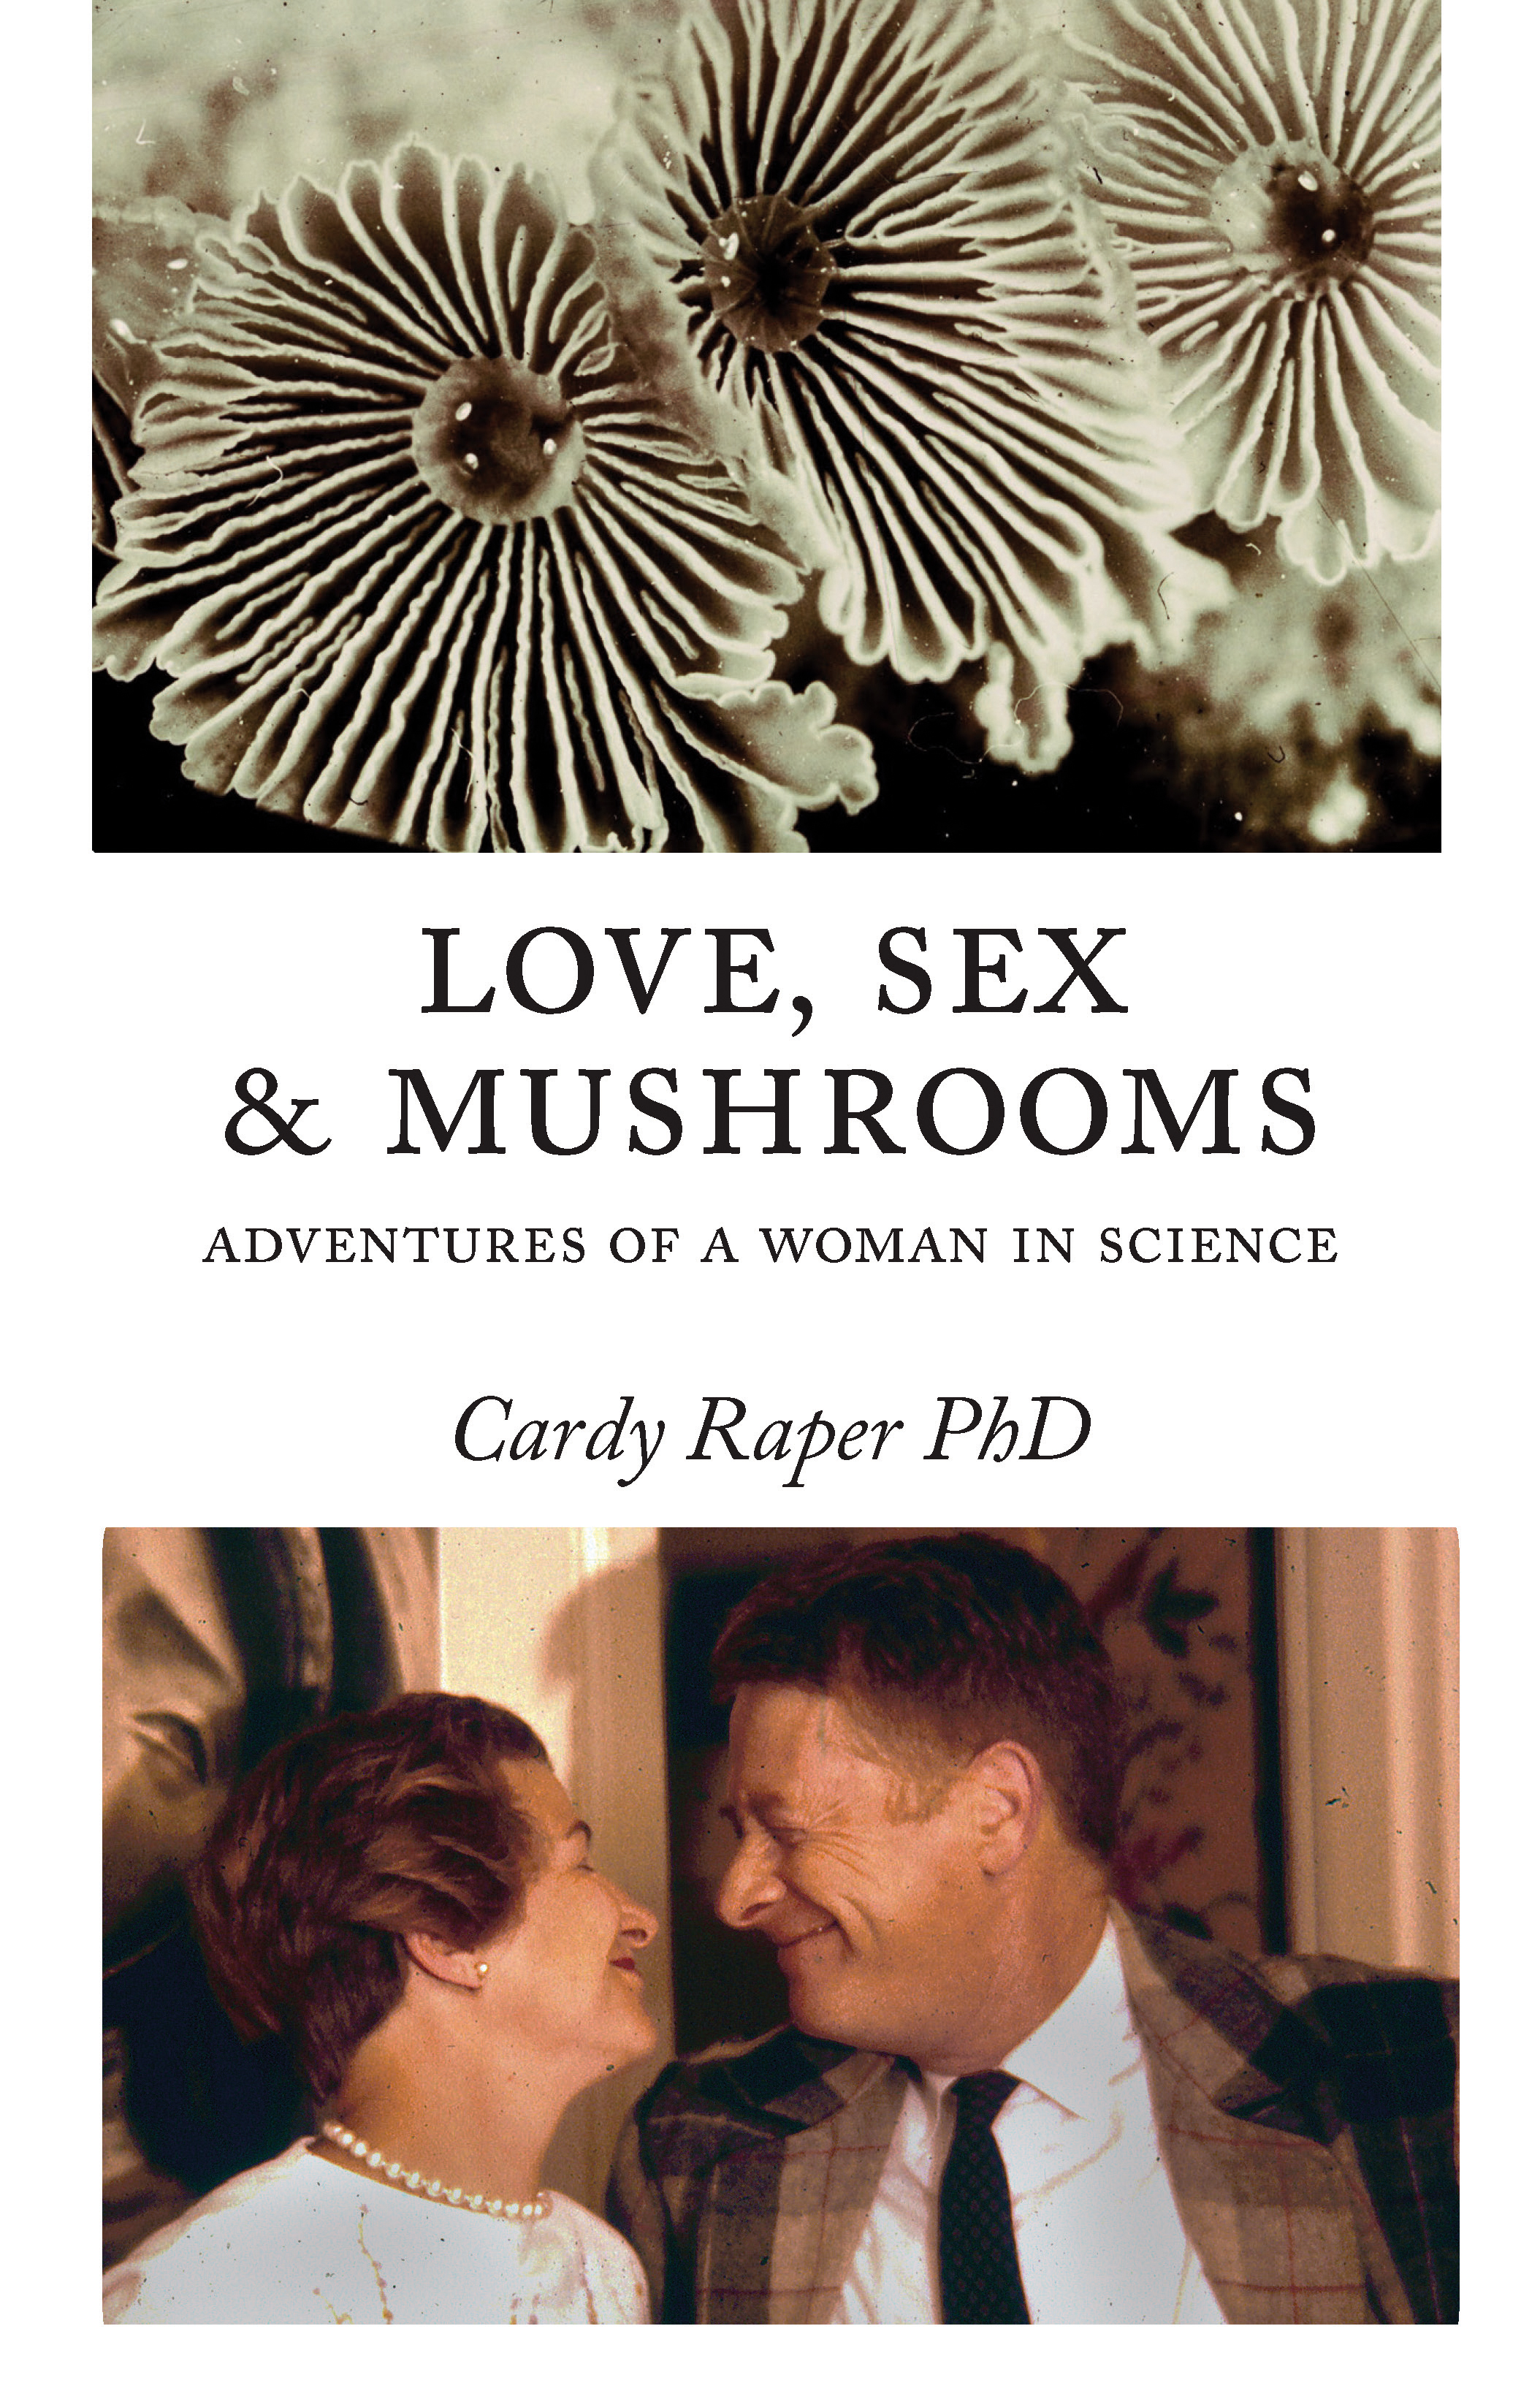 Love, Sex & Mushrooms